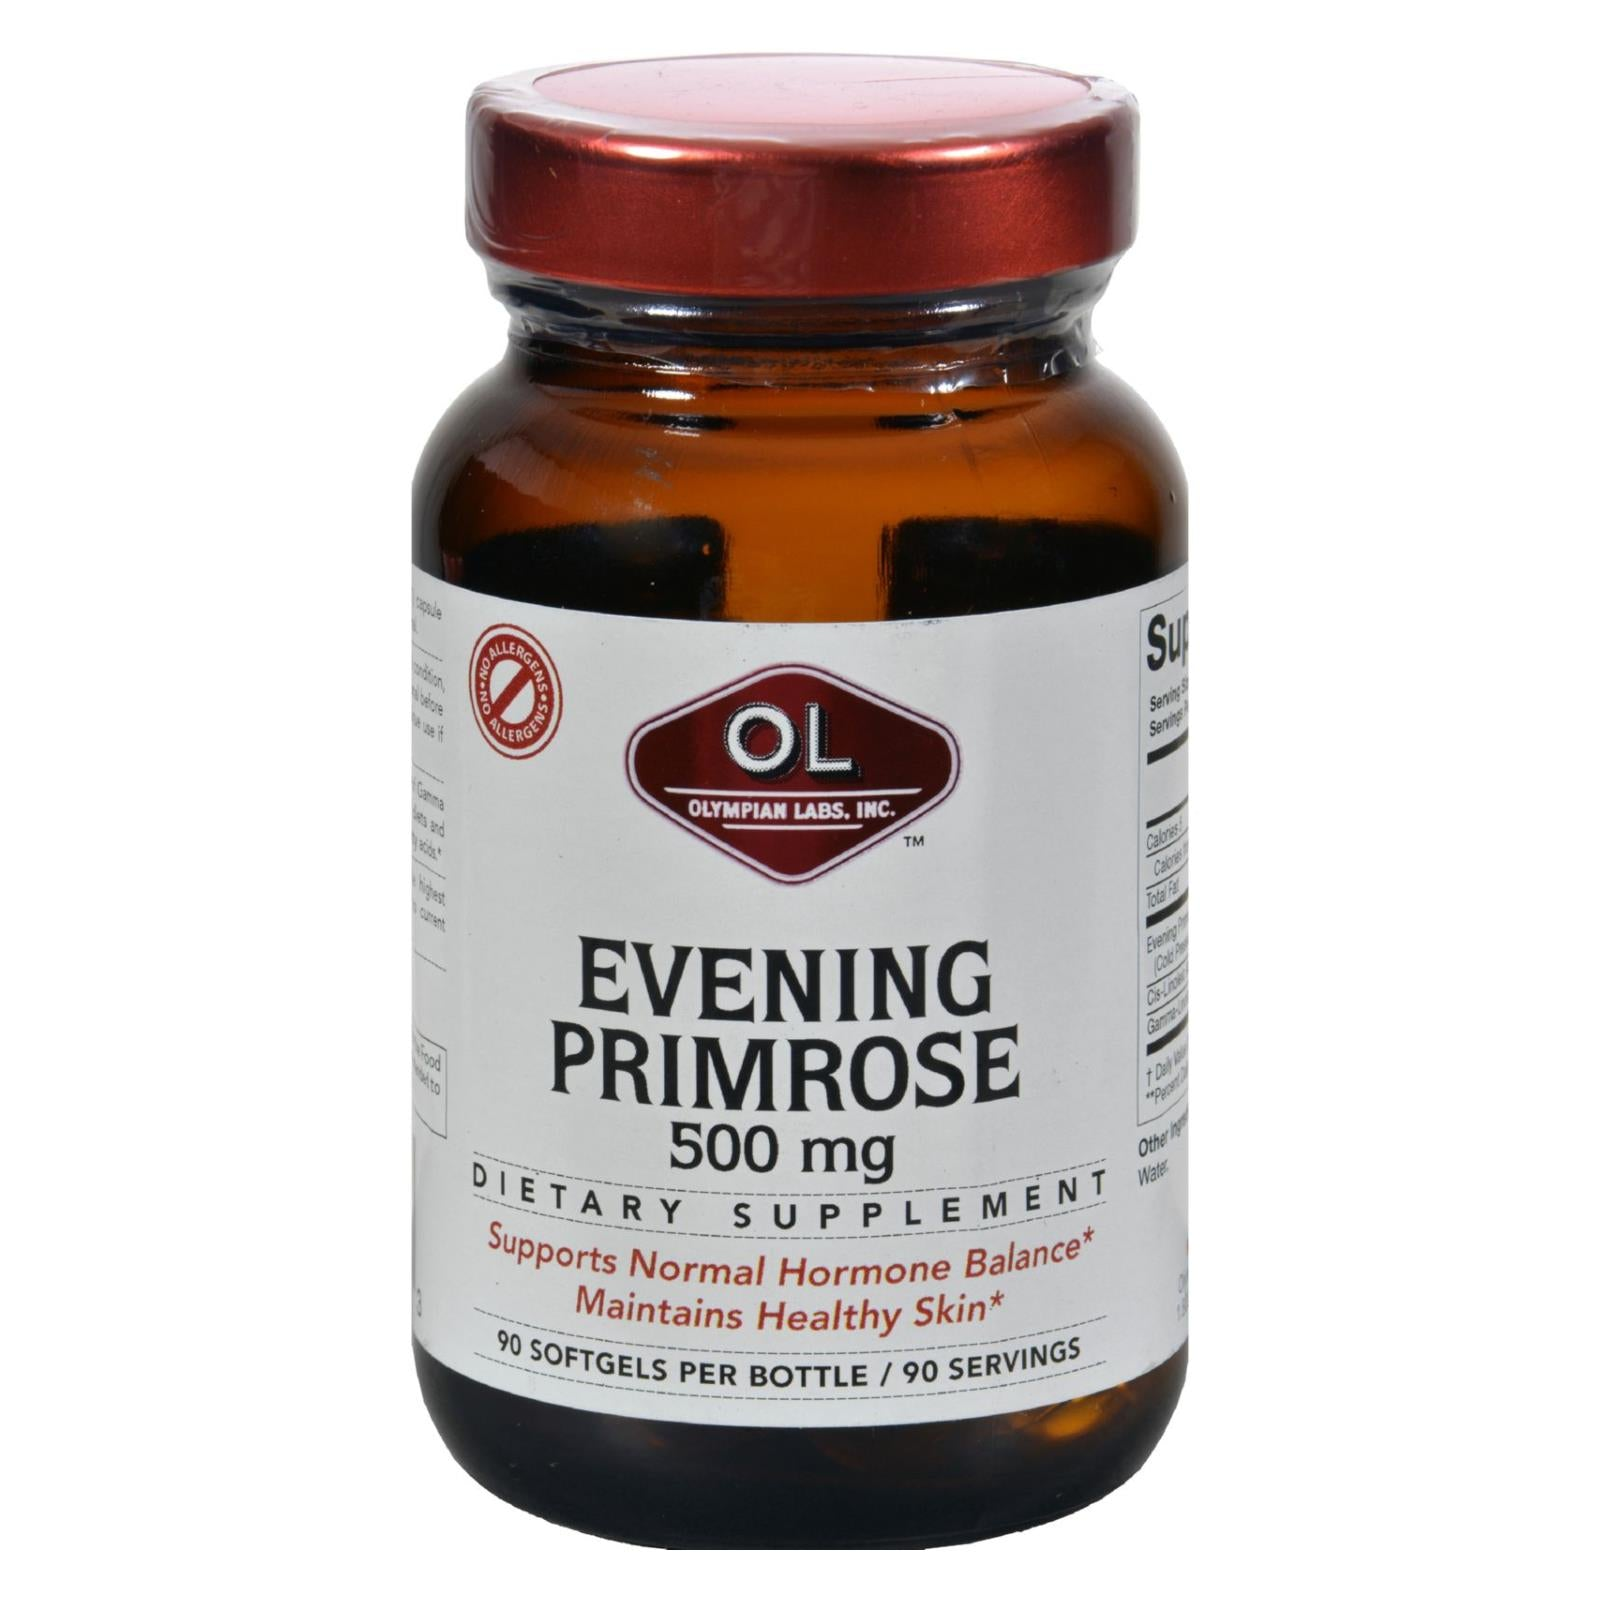 Buy Olympian Labs Evening Primrose Oil - 500 mg - 90 Softgels - Botanical Oils from Veroeco.com